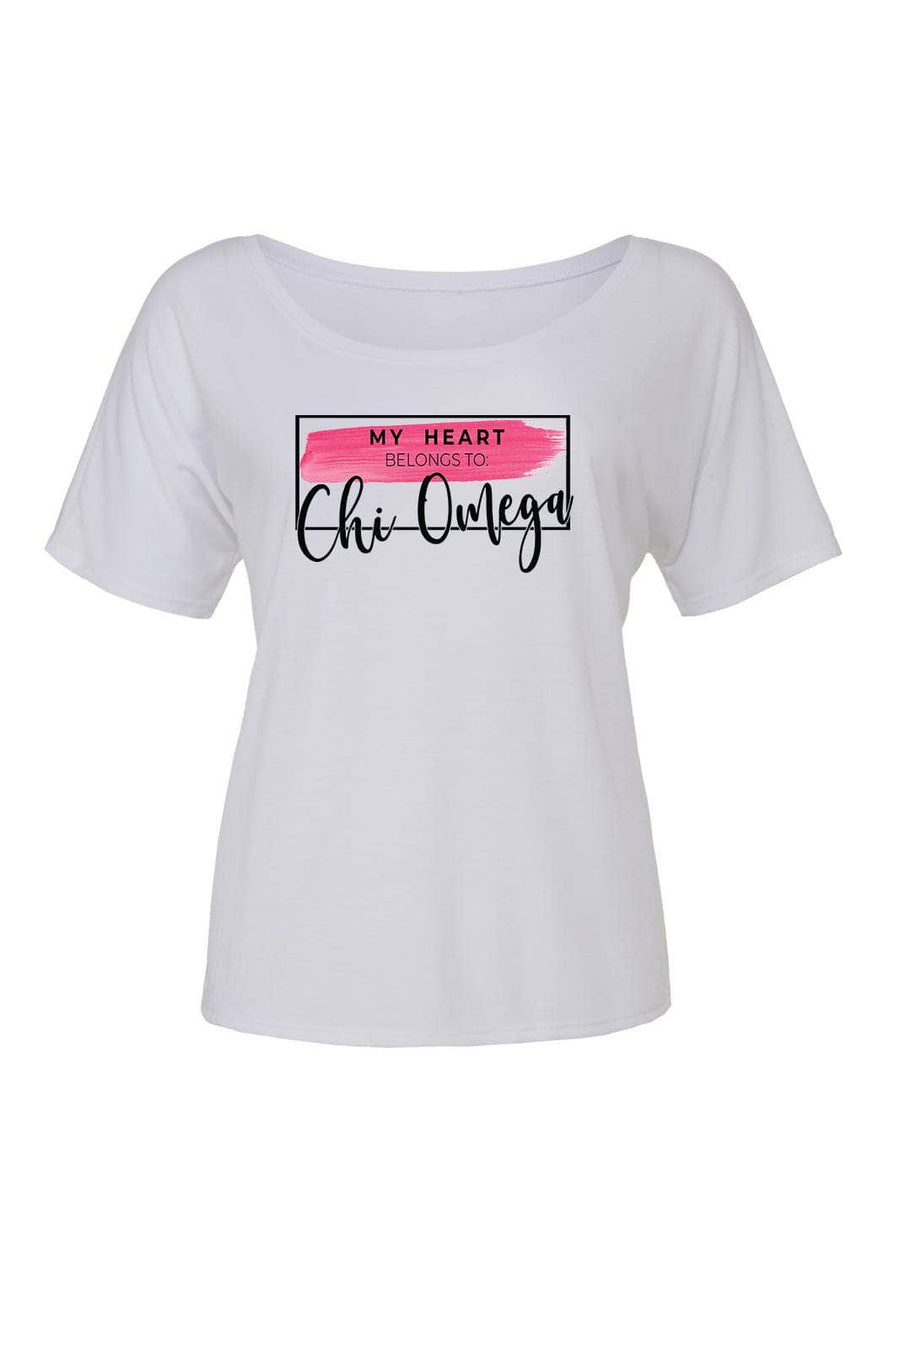 My Heart Belongs to Shirt - Bella Slouchy Scoop Short Sleeve